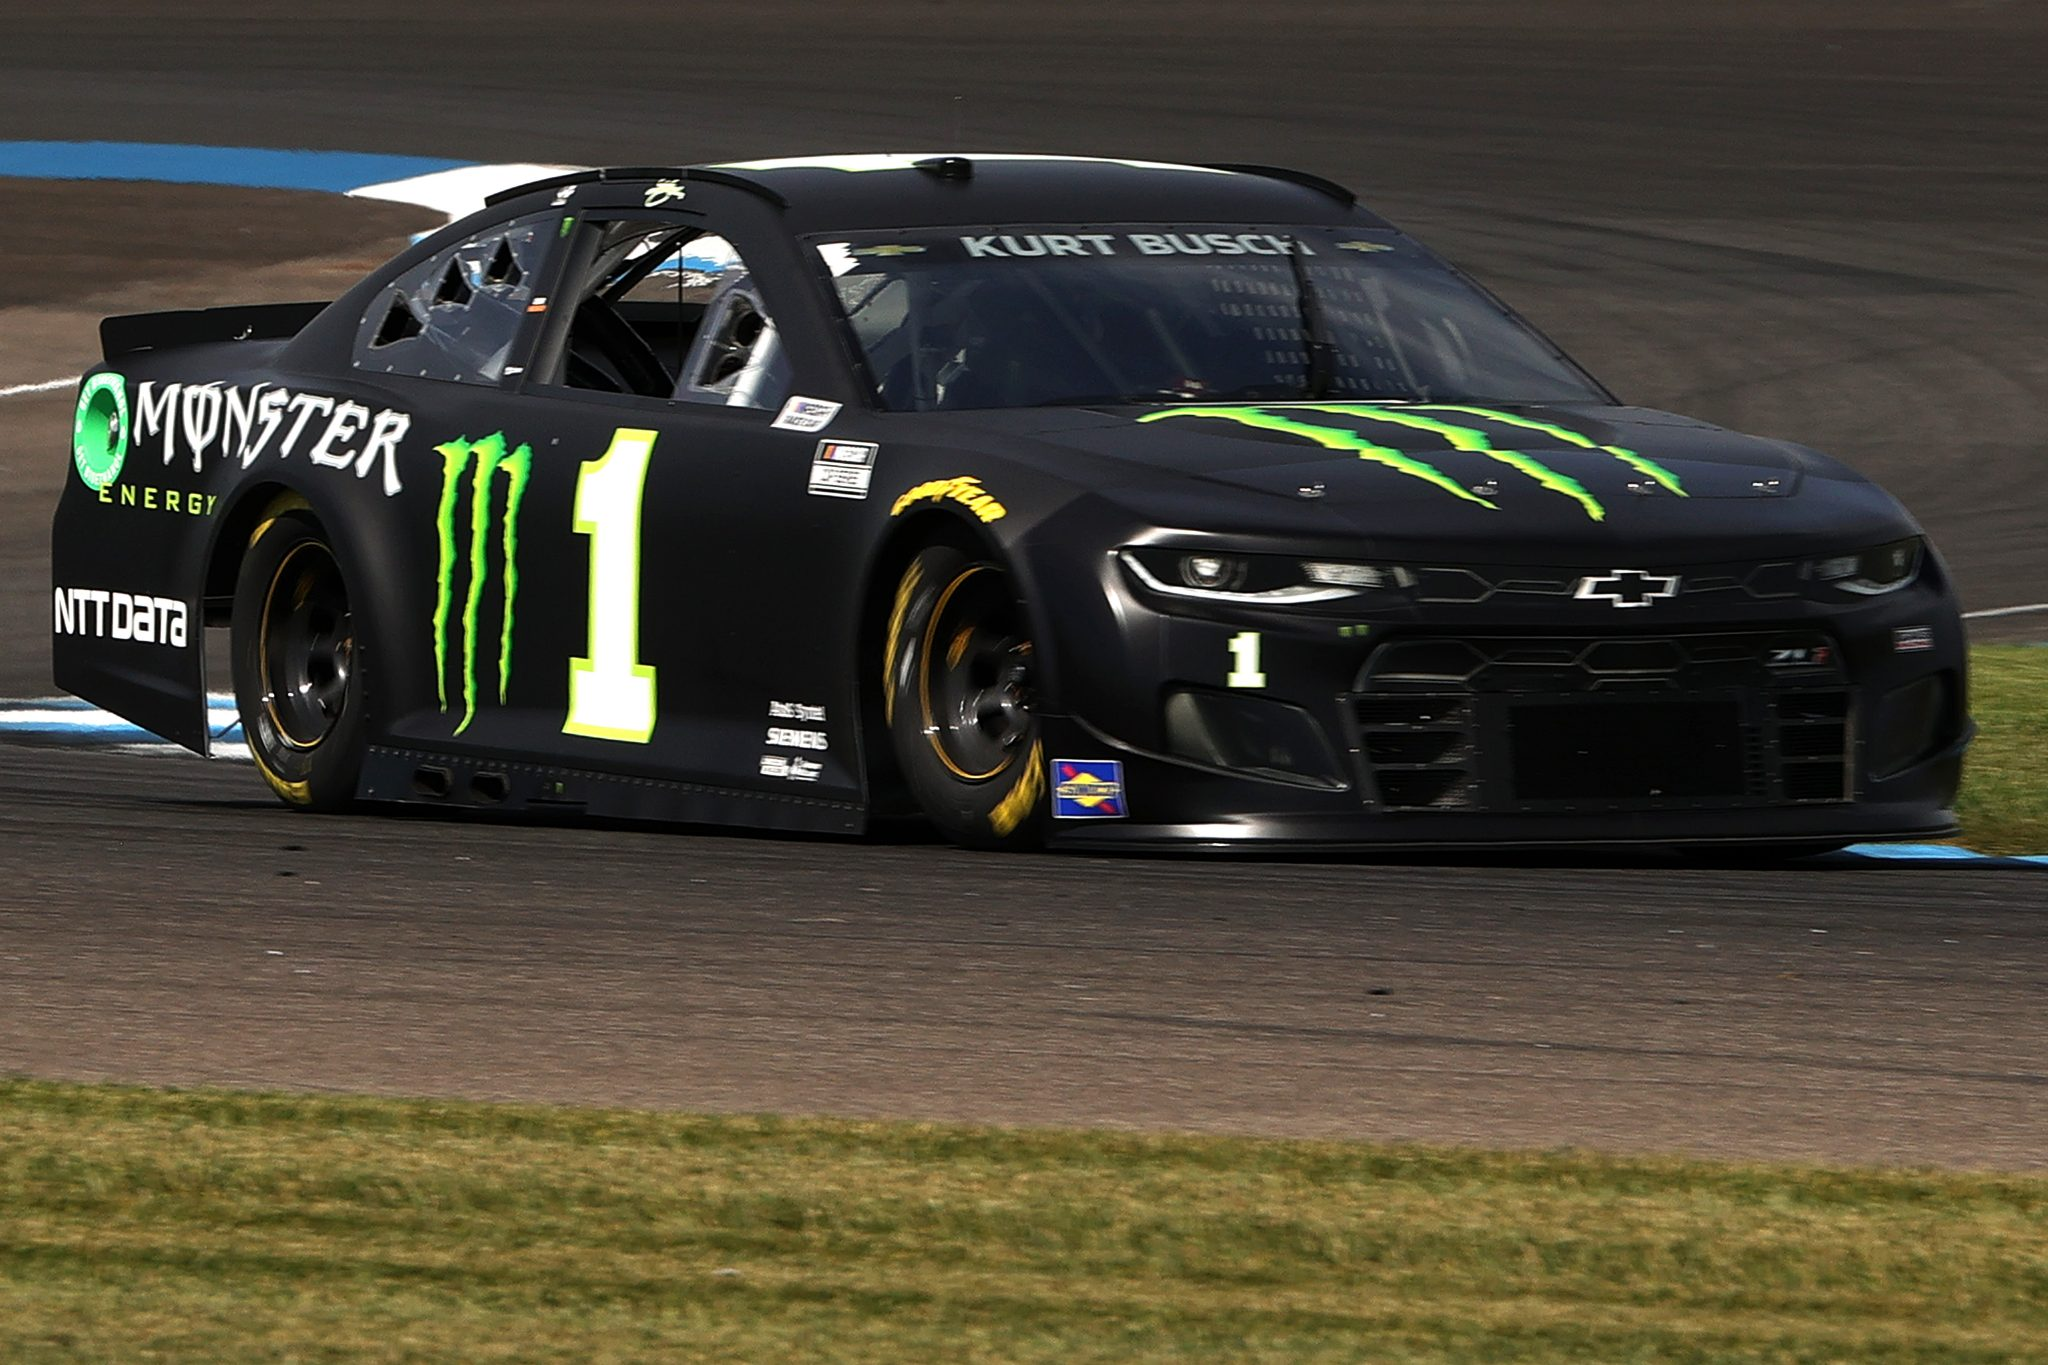 INDIANAPOLIS, INDIANA - AUGUST 14: Kurt Busch, driver of the #1 Monster Energy Chevrolet, drives during practice for the NASCAR Cup Series Verizon 200 at the Brickyard at Indianapolis Motor Speedway on August 14, 2021 in Indianapolis, Indiana. (Photo by Stacy Revere/Getty Images) | Getty Images